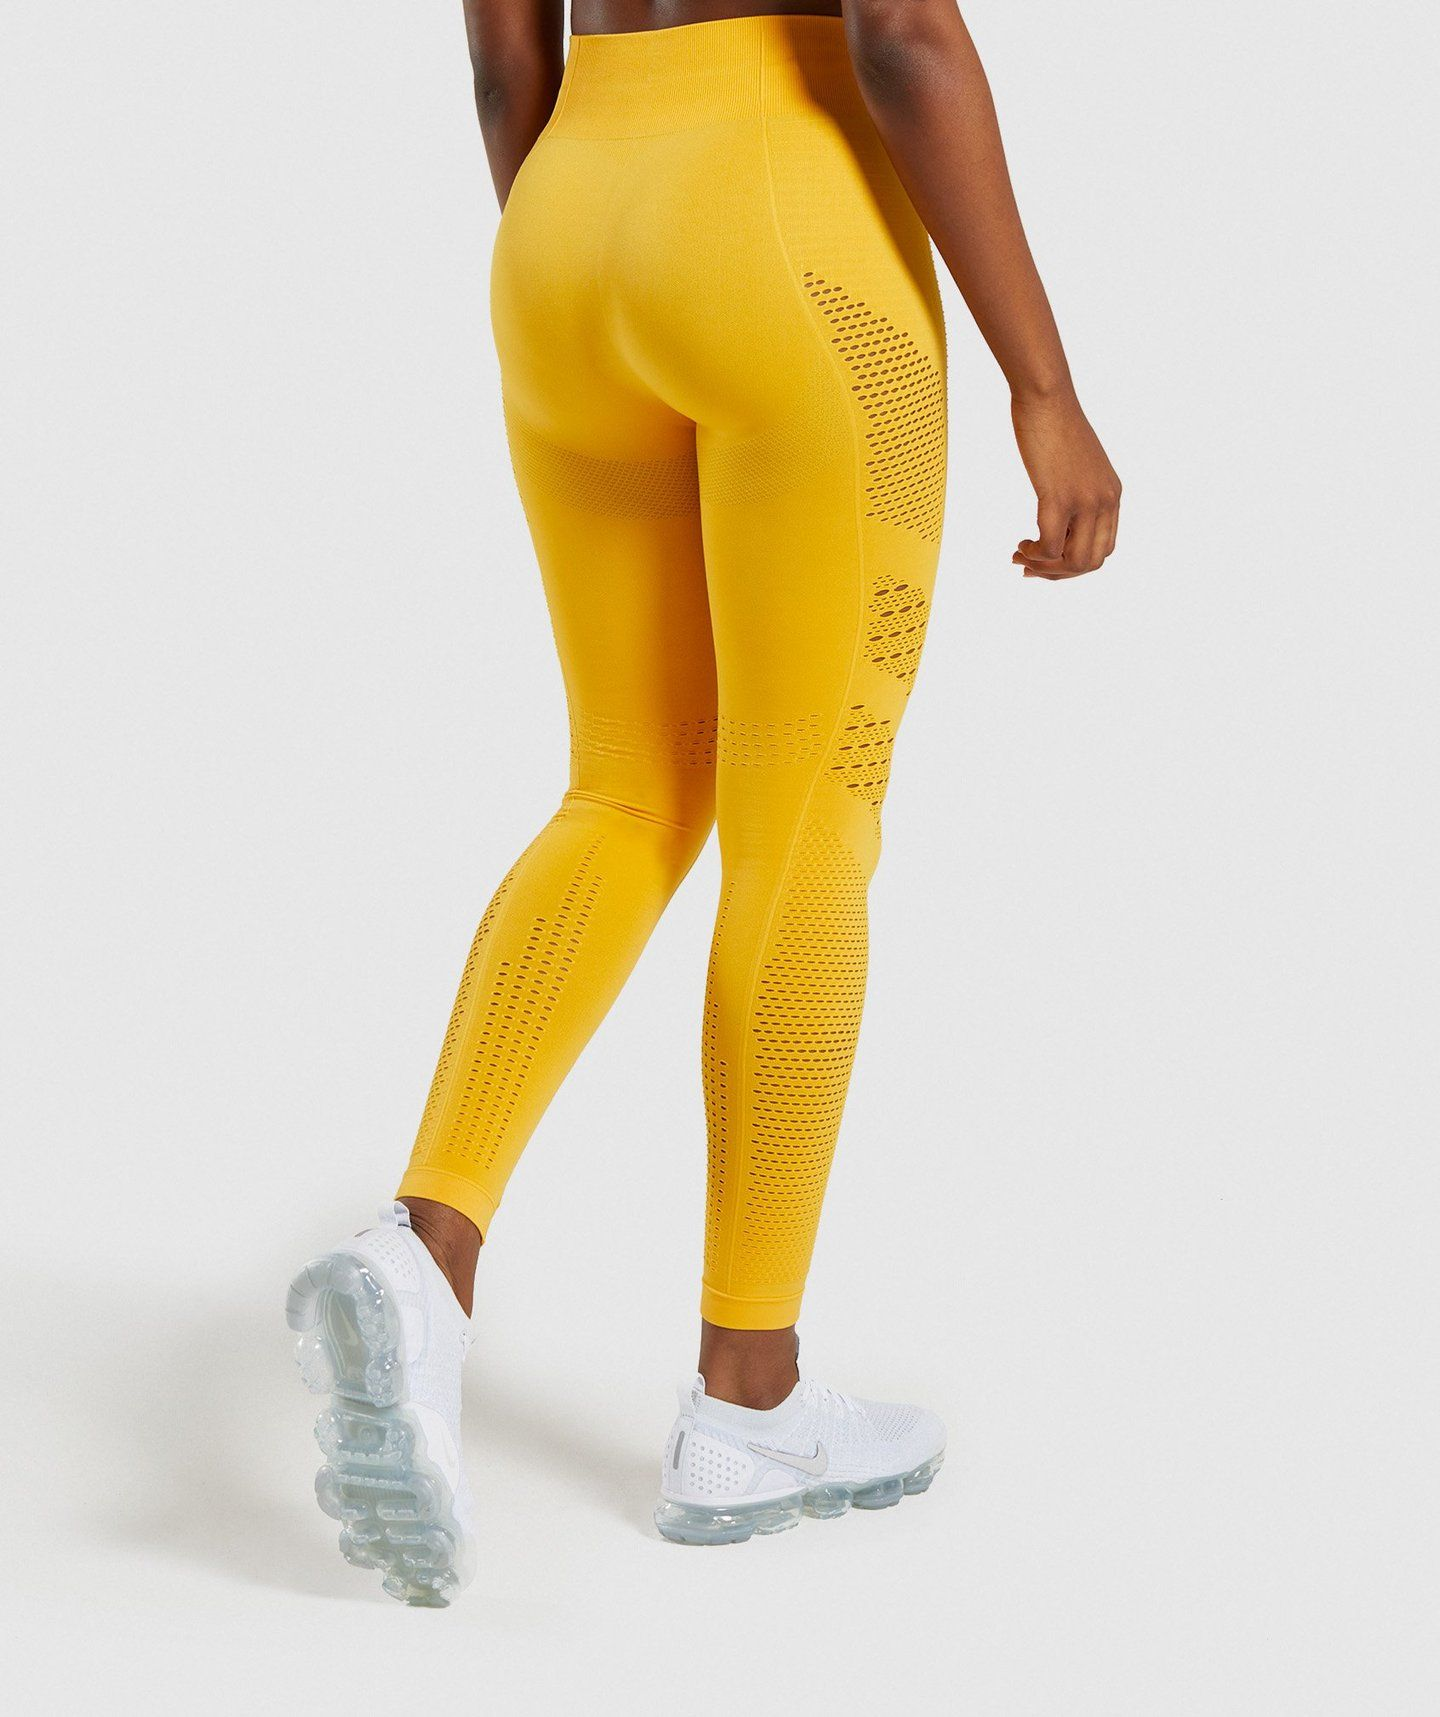 65642fcb25cba Gymshark Flawless Knit Tights - Yellow | Bottoms & Leggings | Gymshark